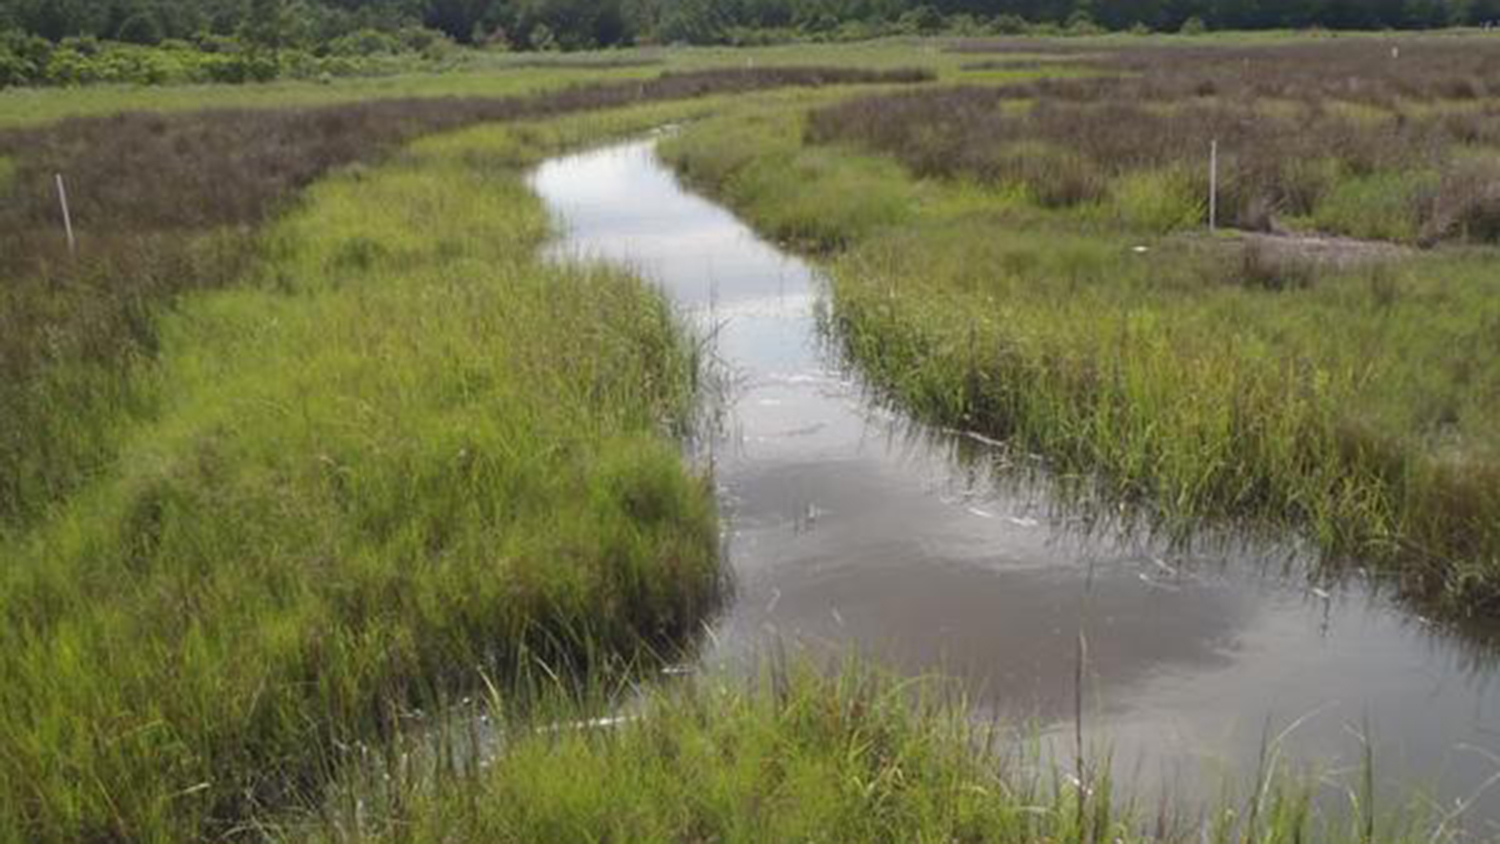 A constructed wetland